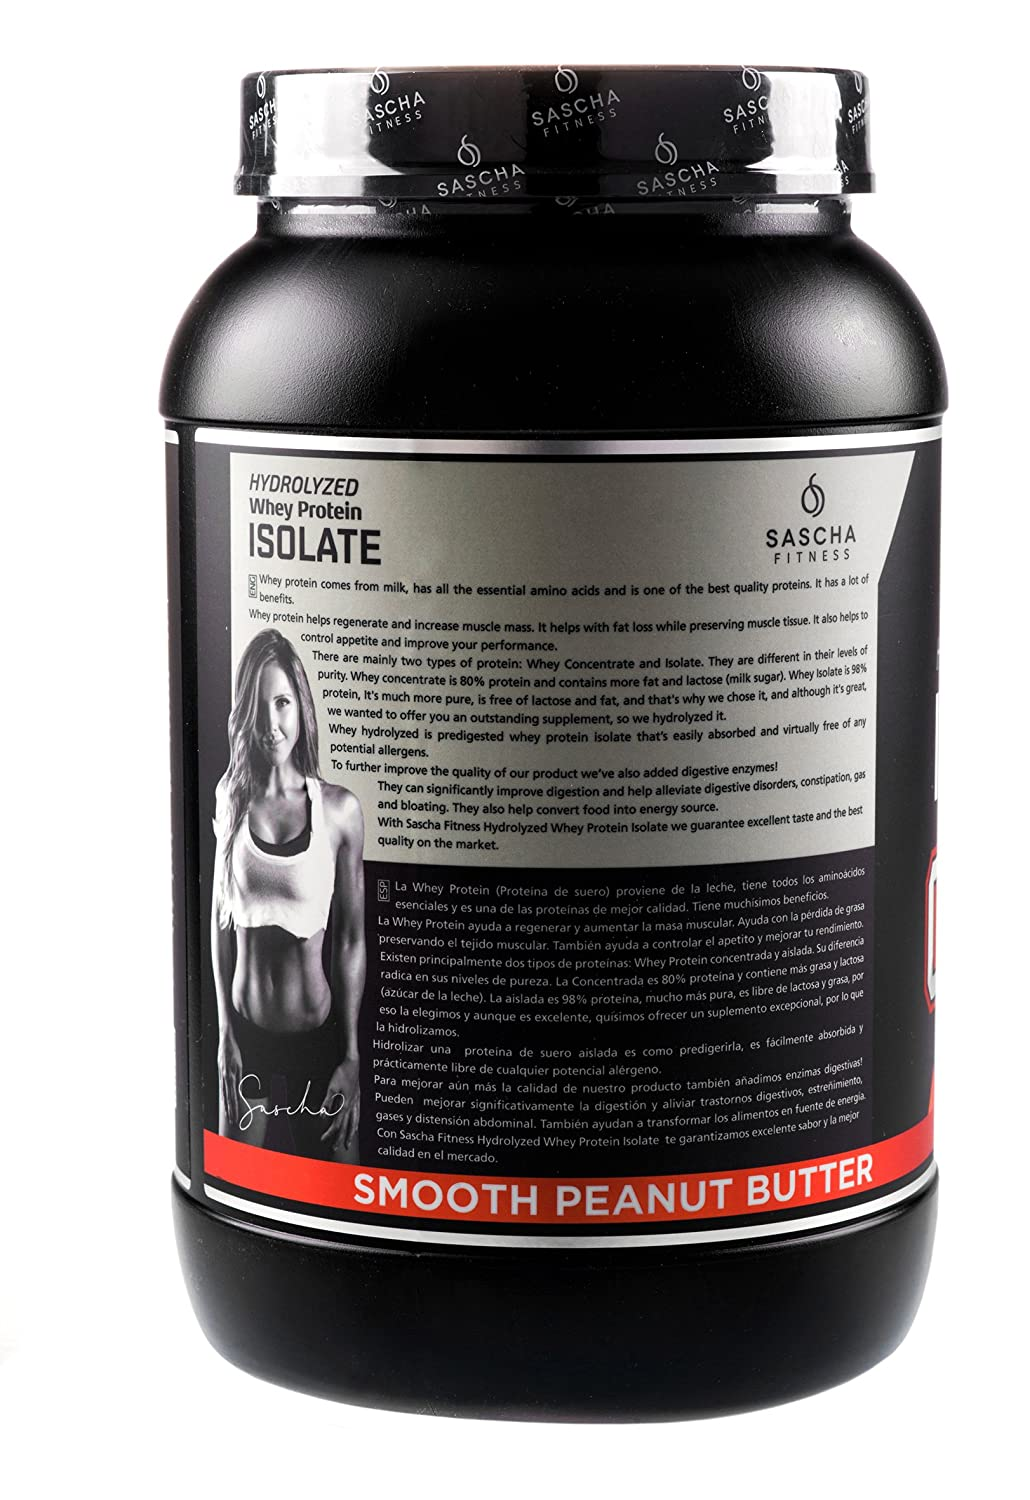 Amazon.com: Sascha Fitness Hydrolyzed Whey Protein Isolate,100% Grass-Fed (2 Pounds, Peanut Butter): Health & Personal Care